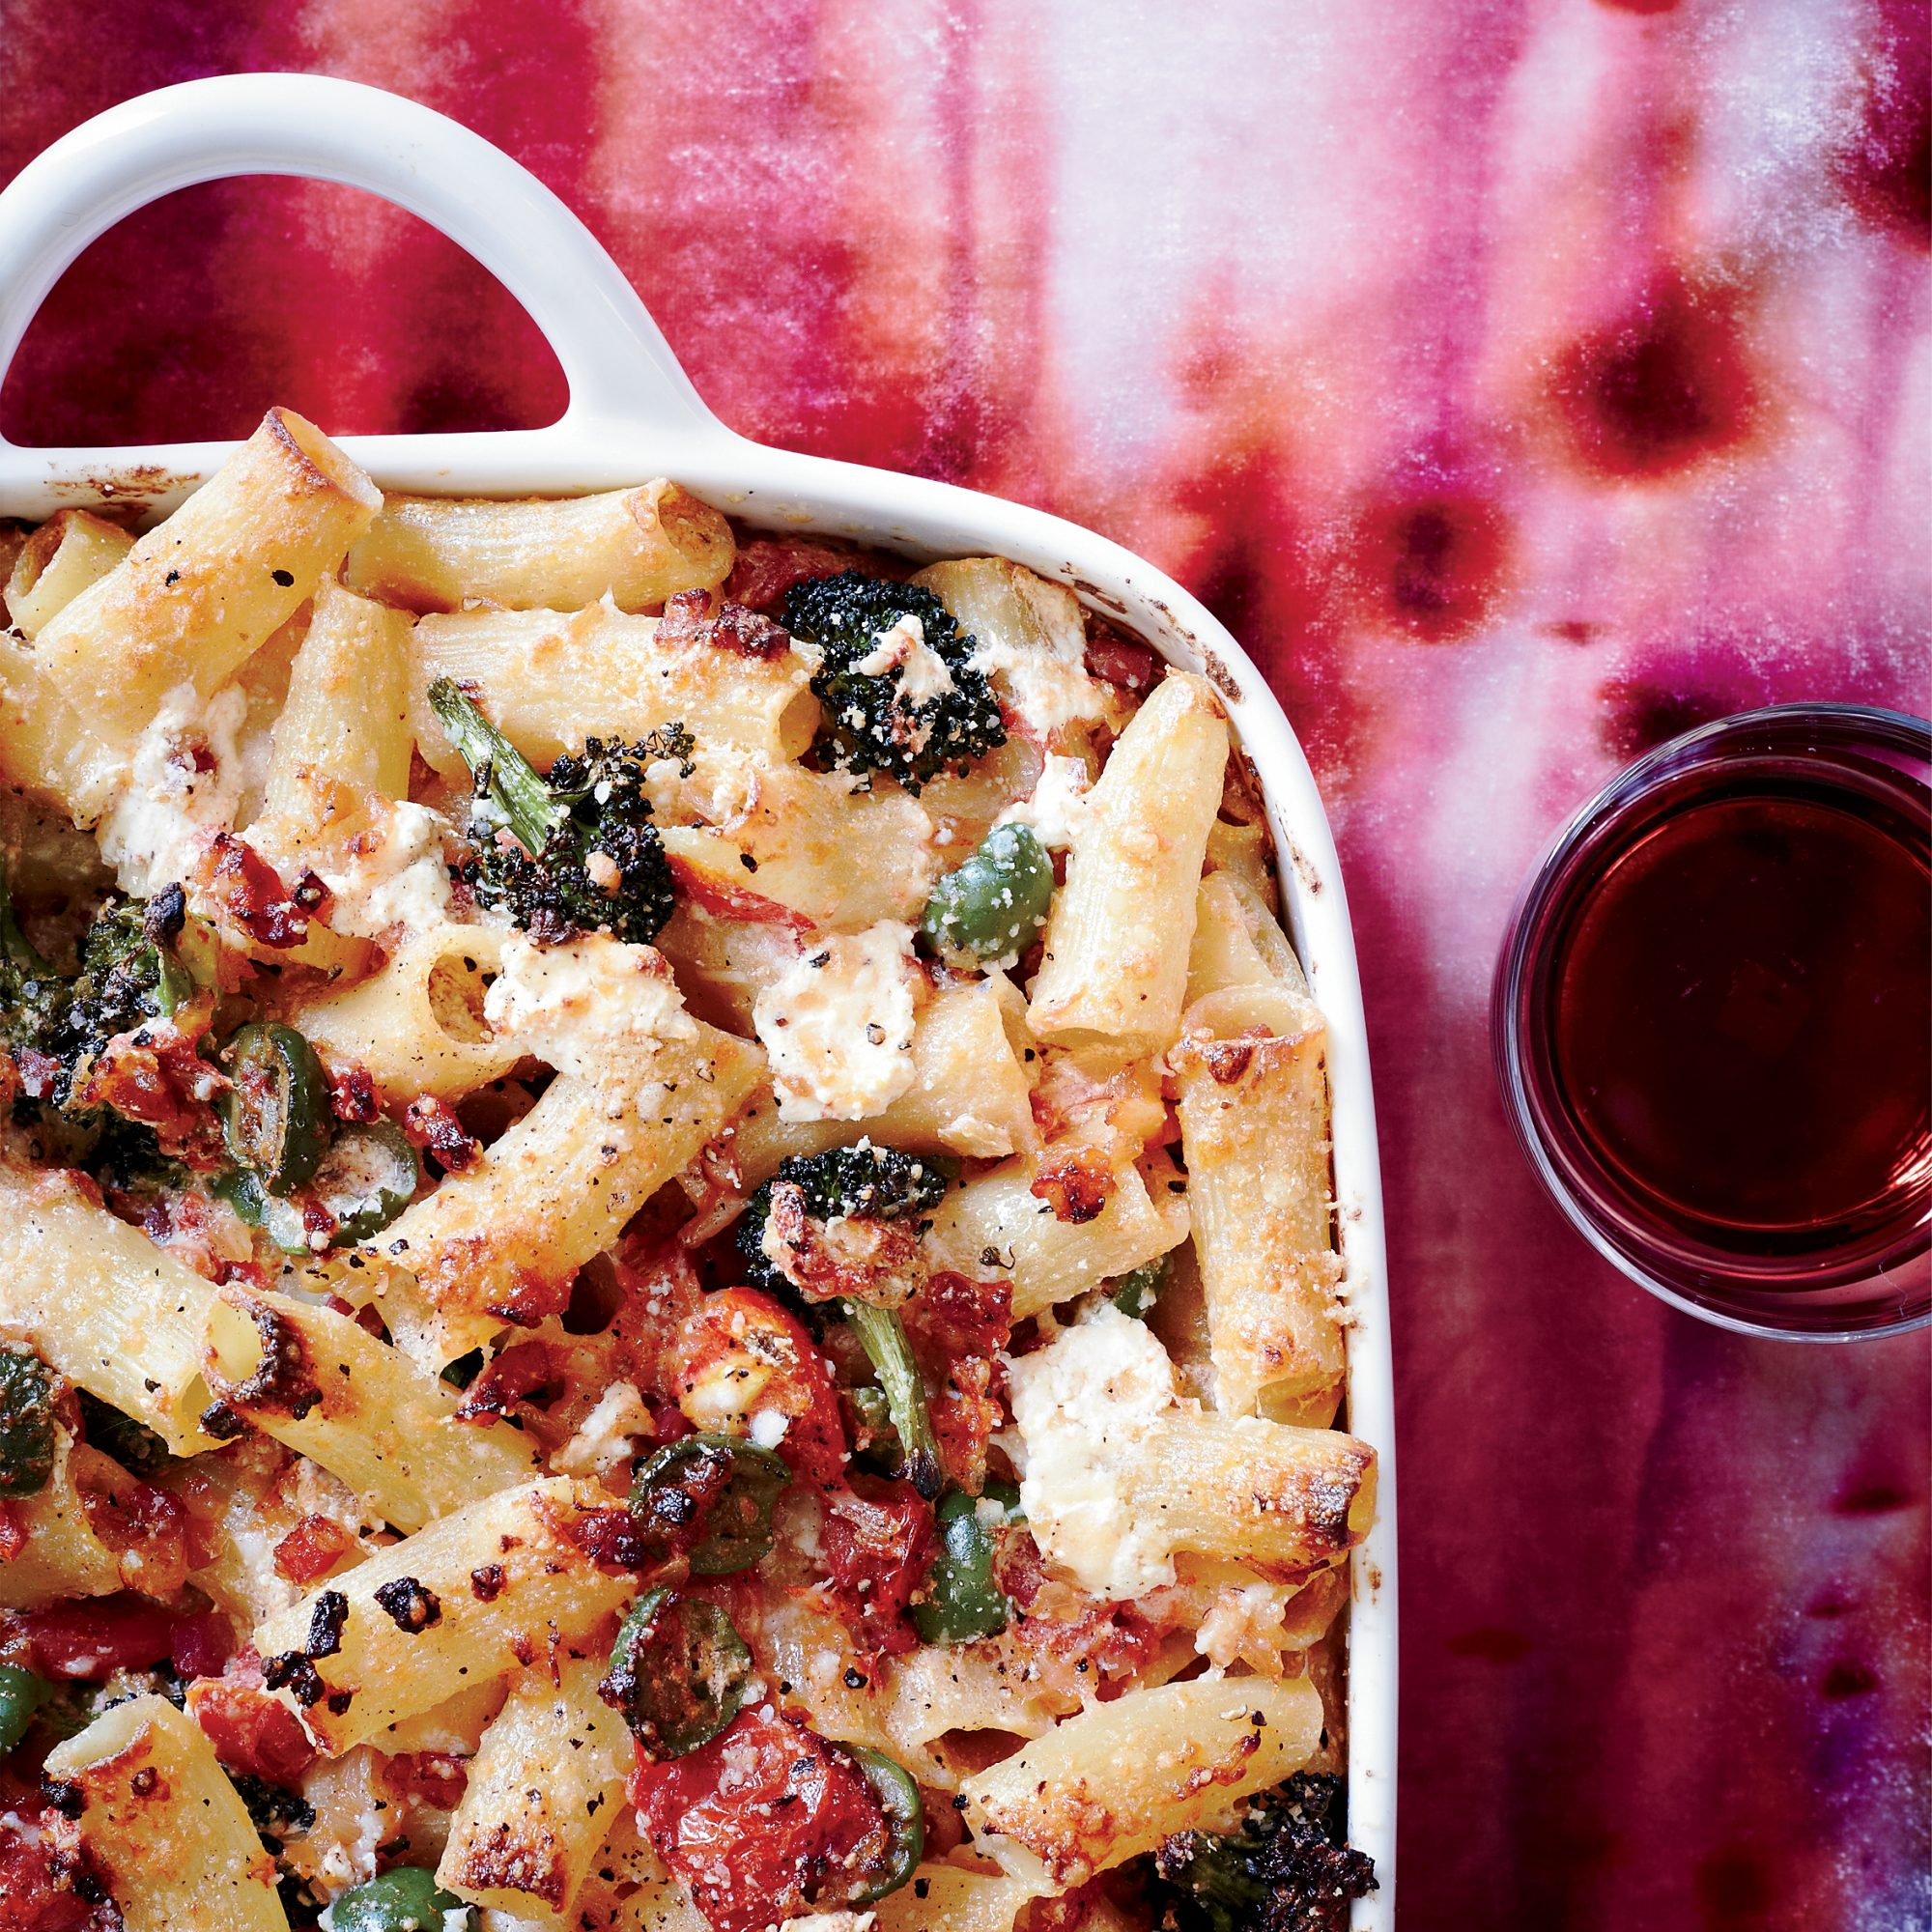 201404-r-baked-rigatoni-with-broccoli-green-olives-and-pancetta.jpg